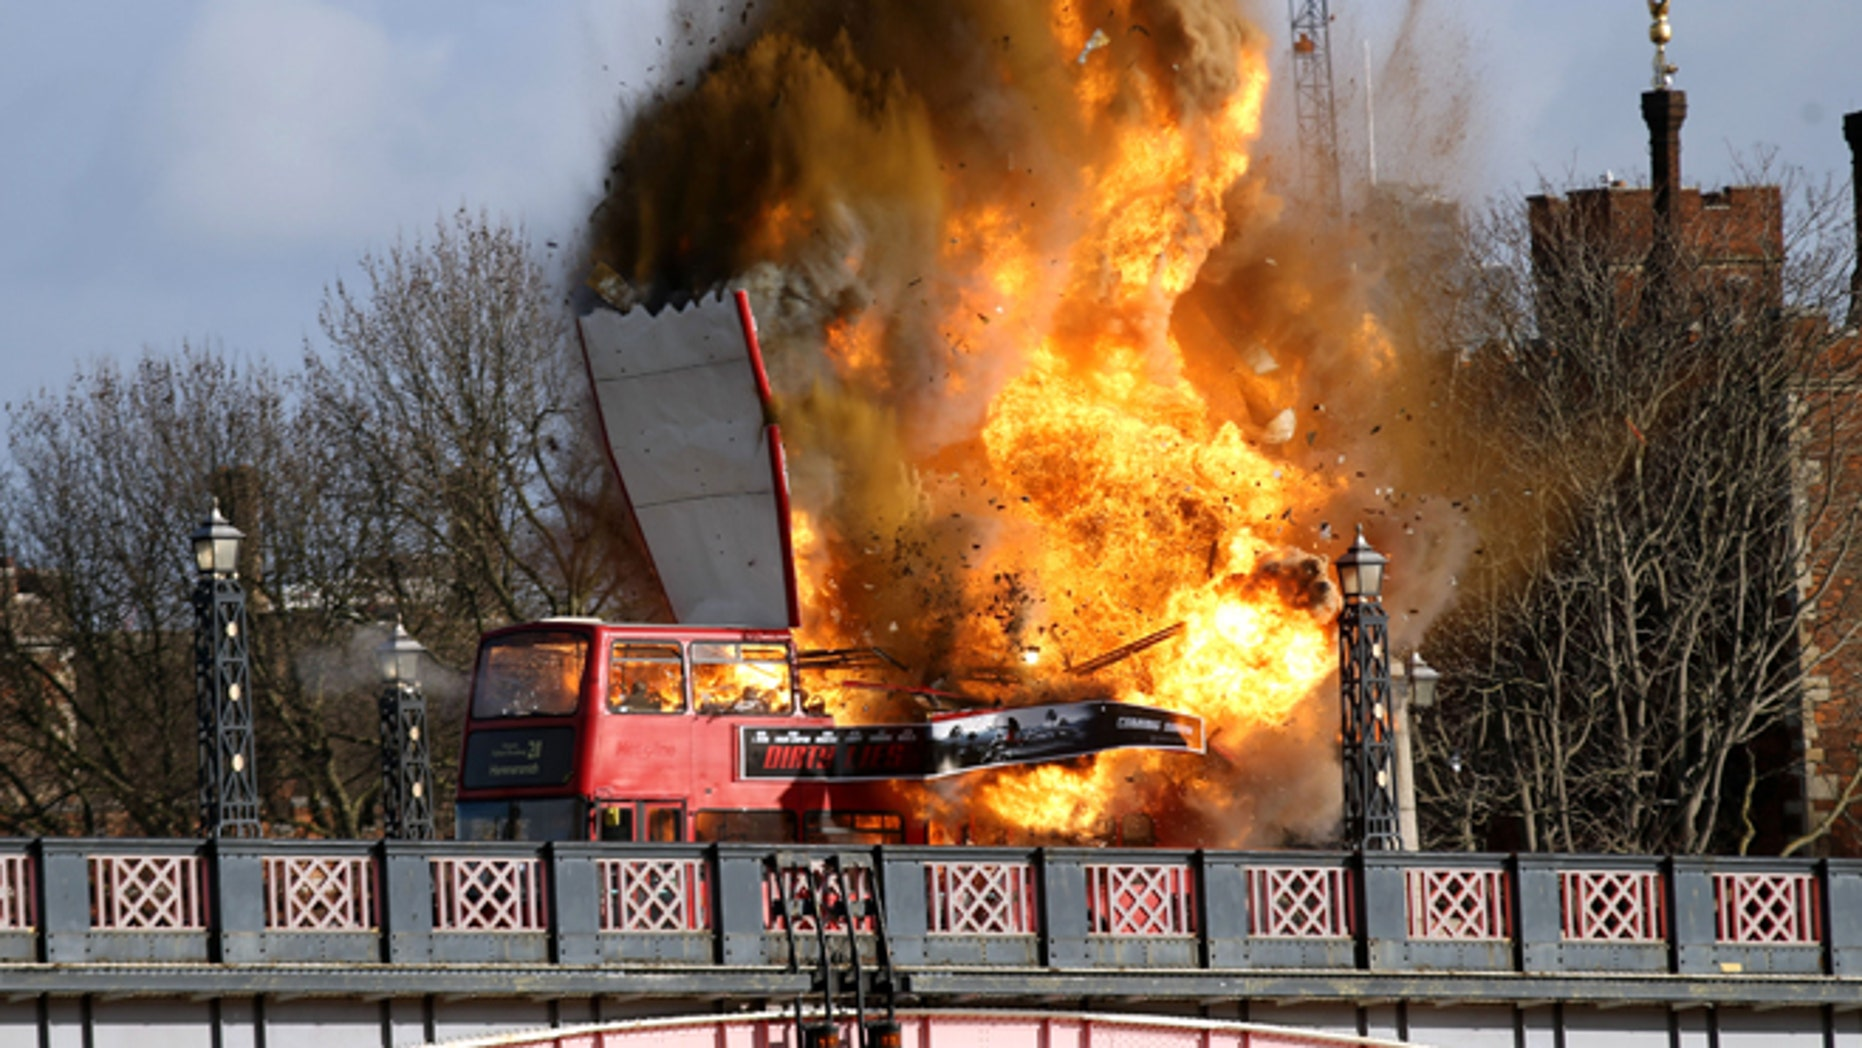 """Feb 7, 2016. A bus explodes on Lambeth Bridge, during filming for Jackie Chan's new film """"The Foreigner,"""" in London."""